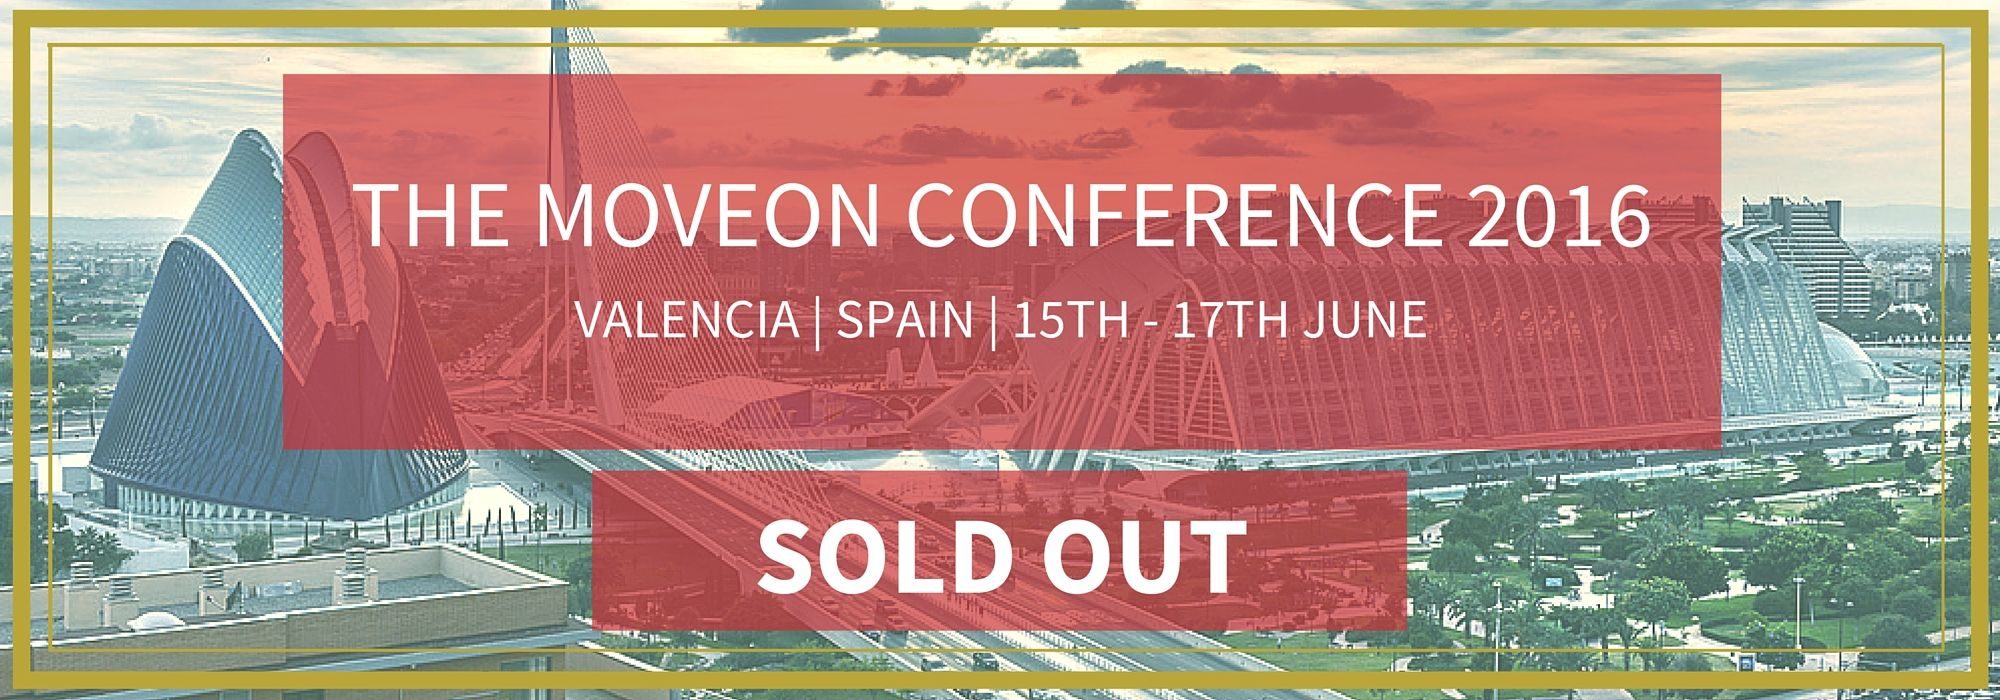 MoveON Conf 16 - Sold out